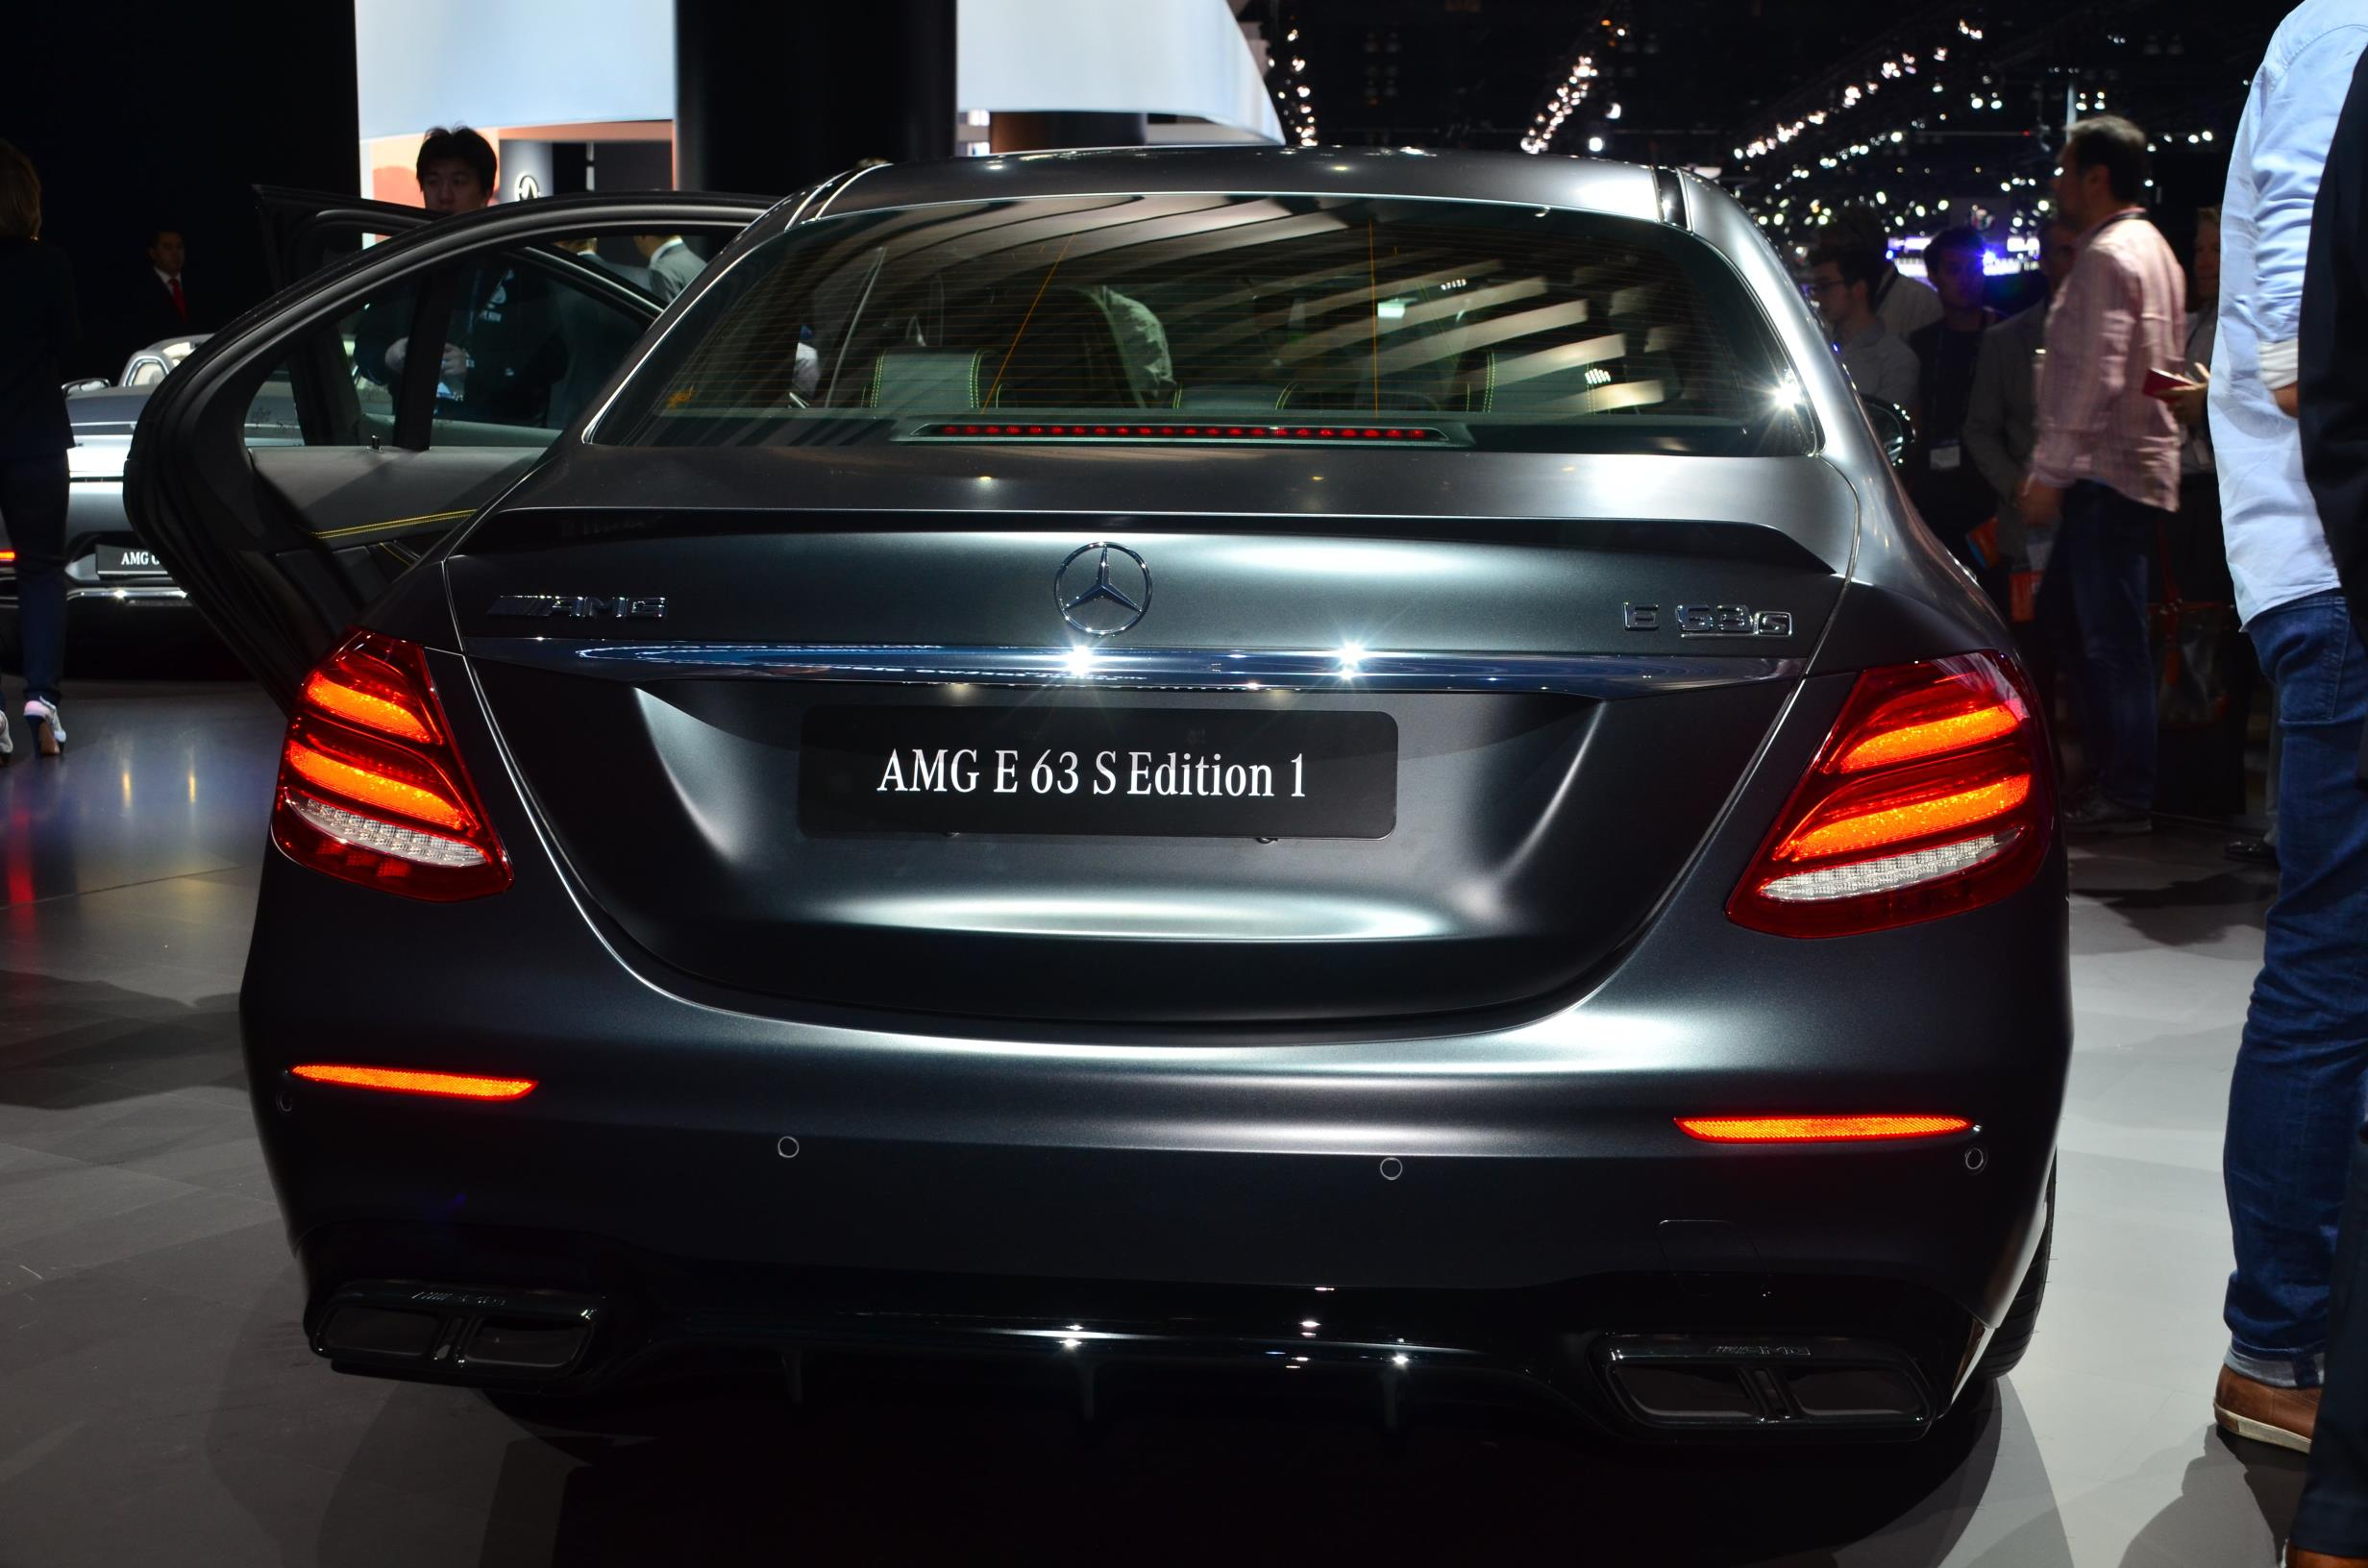 2016 Mercedes Benz Amg E 63 Sedan >> Mercedes-AMG E63 S Edition 1 Is Black at 2016 LA Auto Show - autoevolution